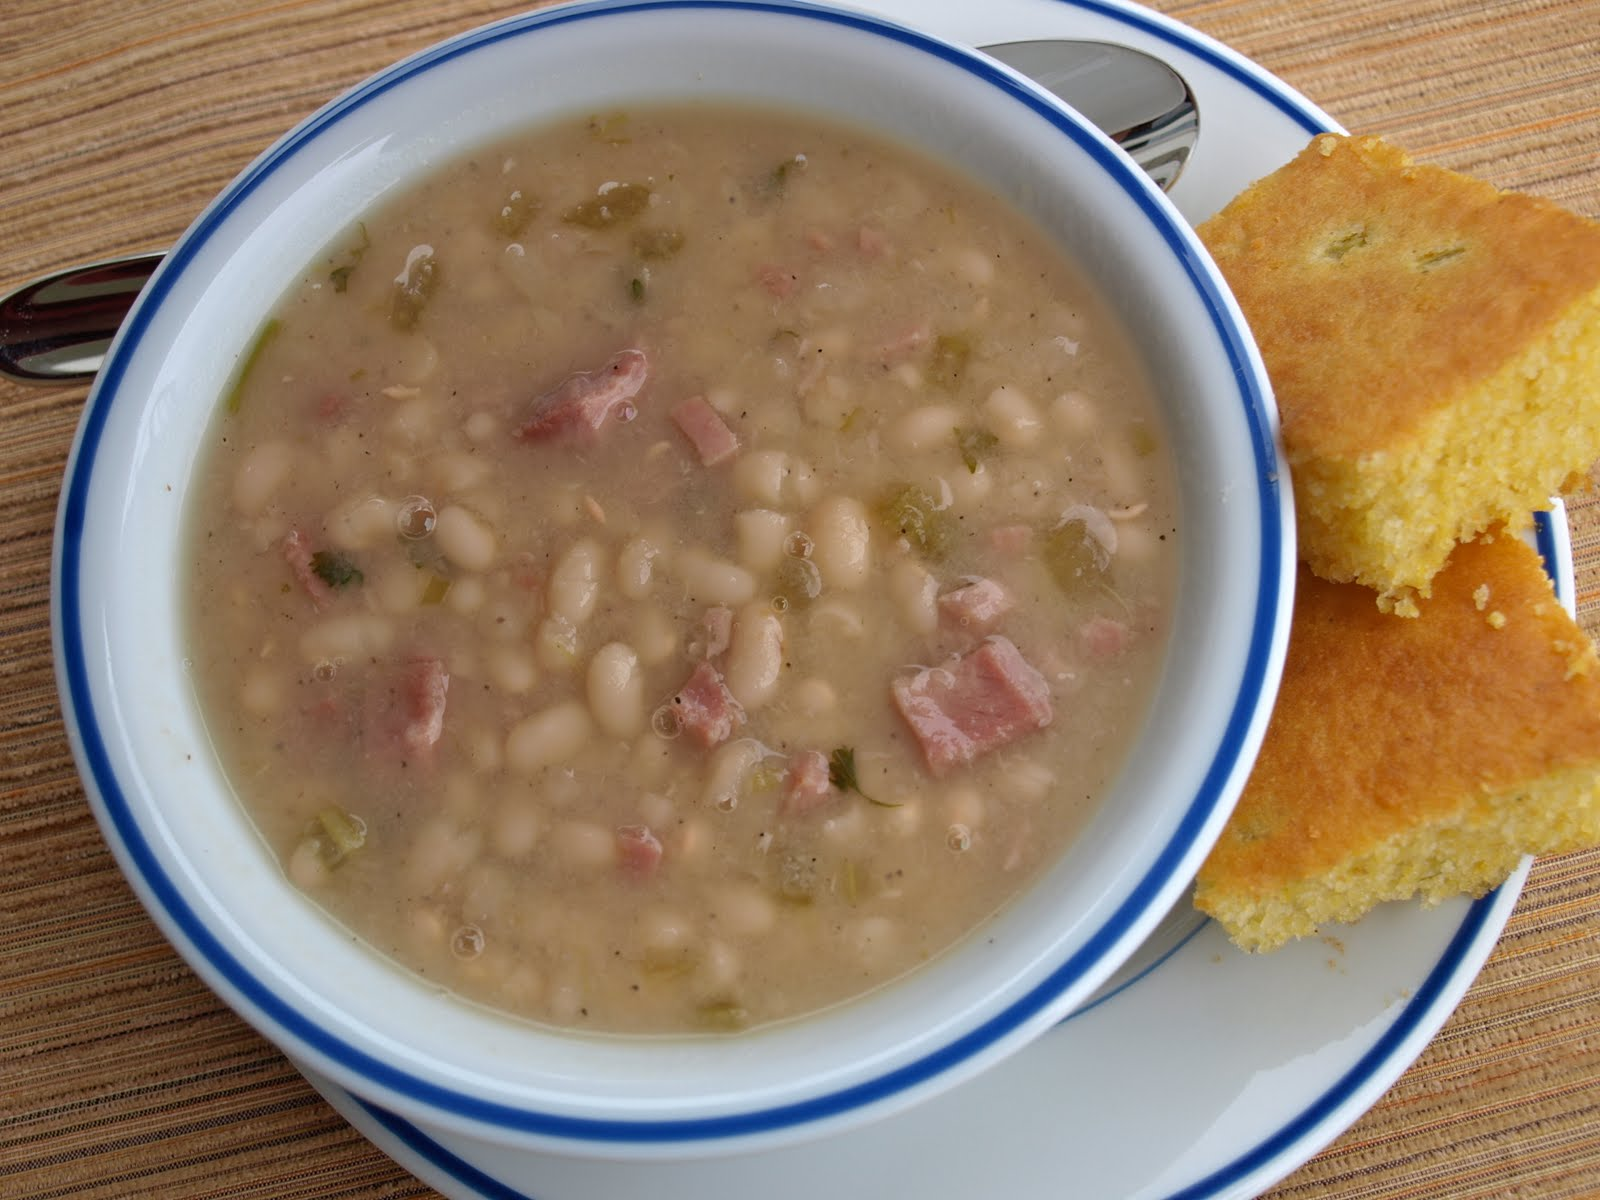 Soup beans and cornbread